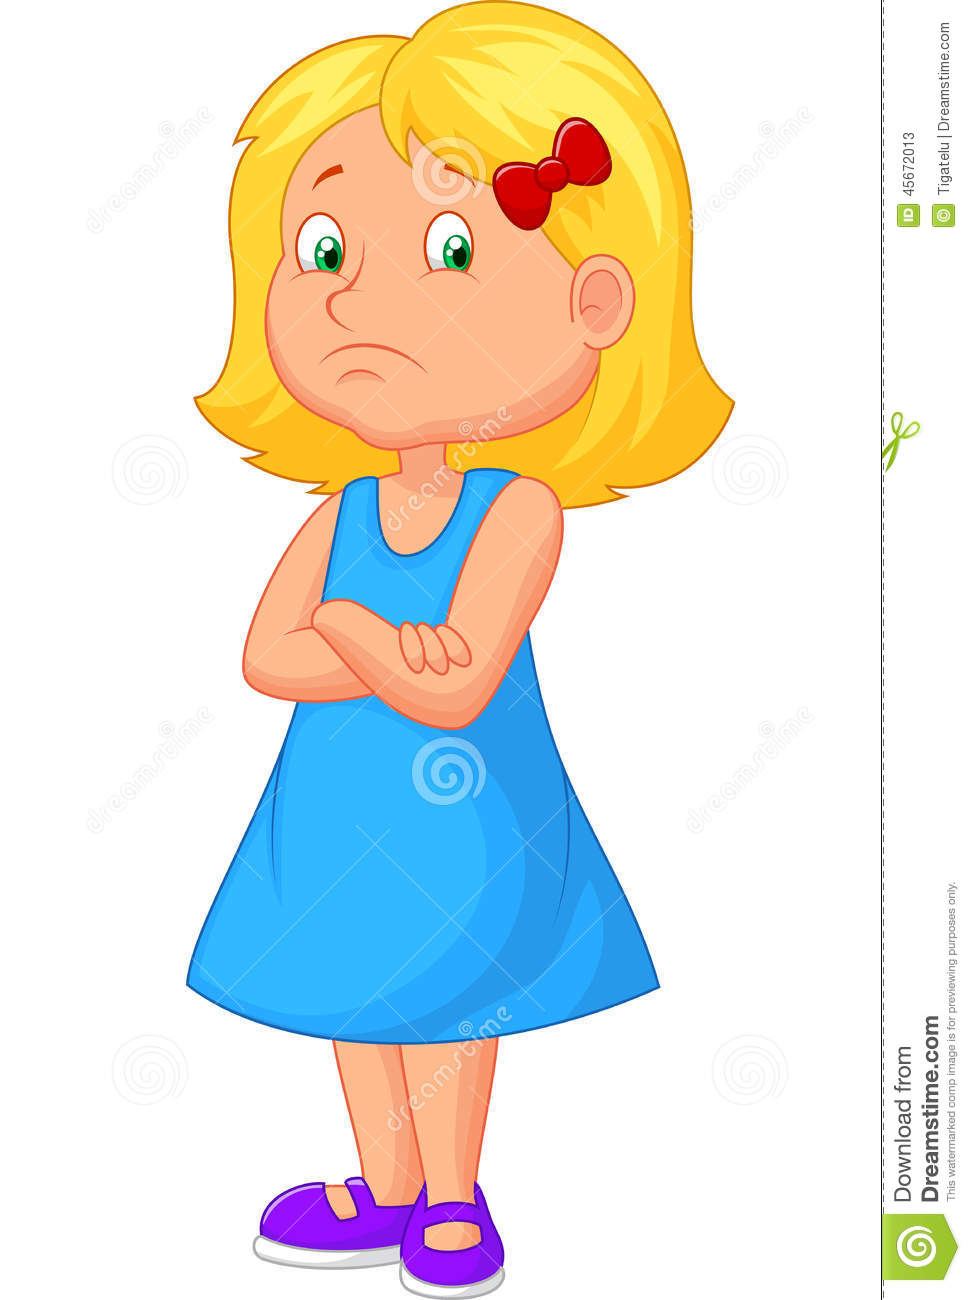 Angry girl cartoon stock vector. Illustration of child.